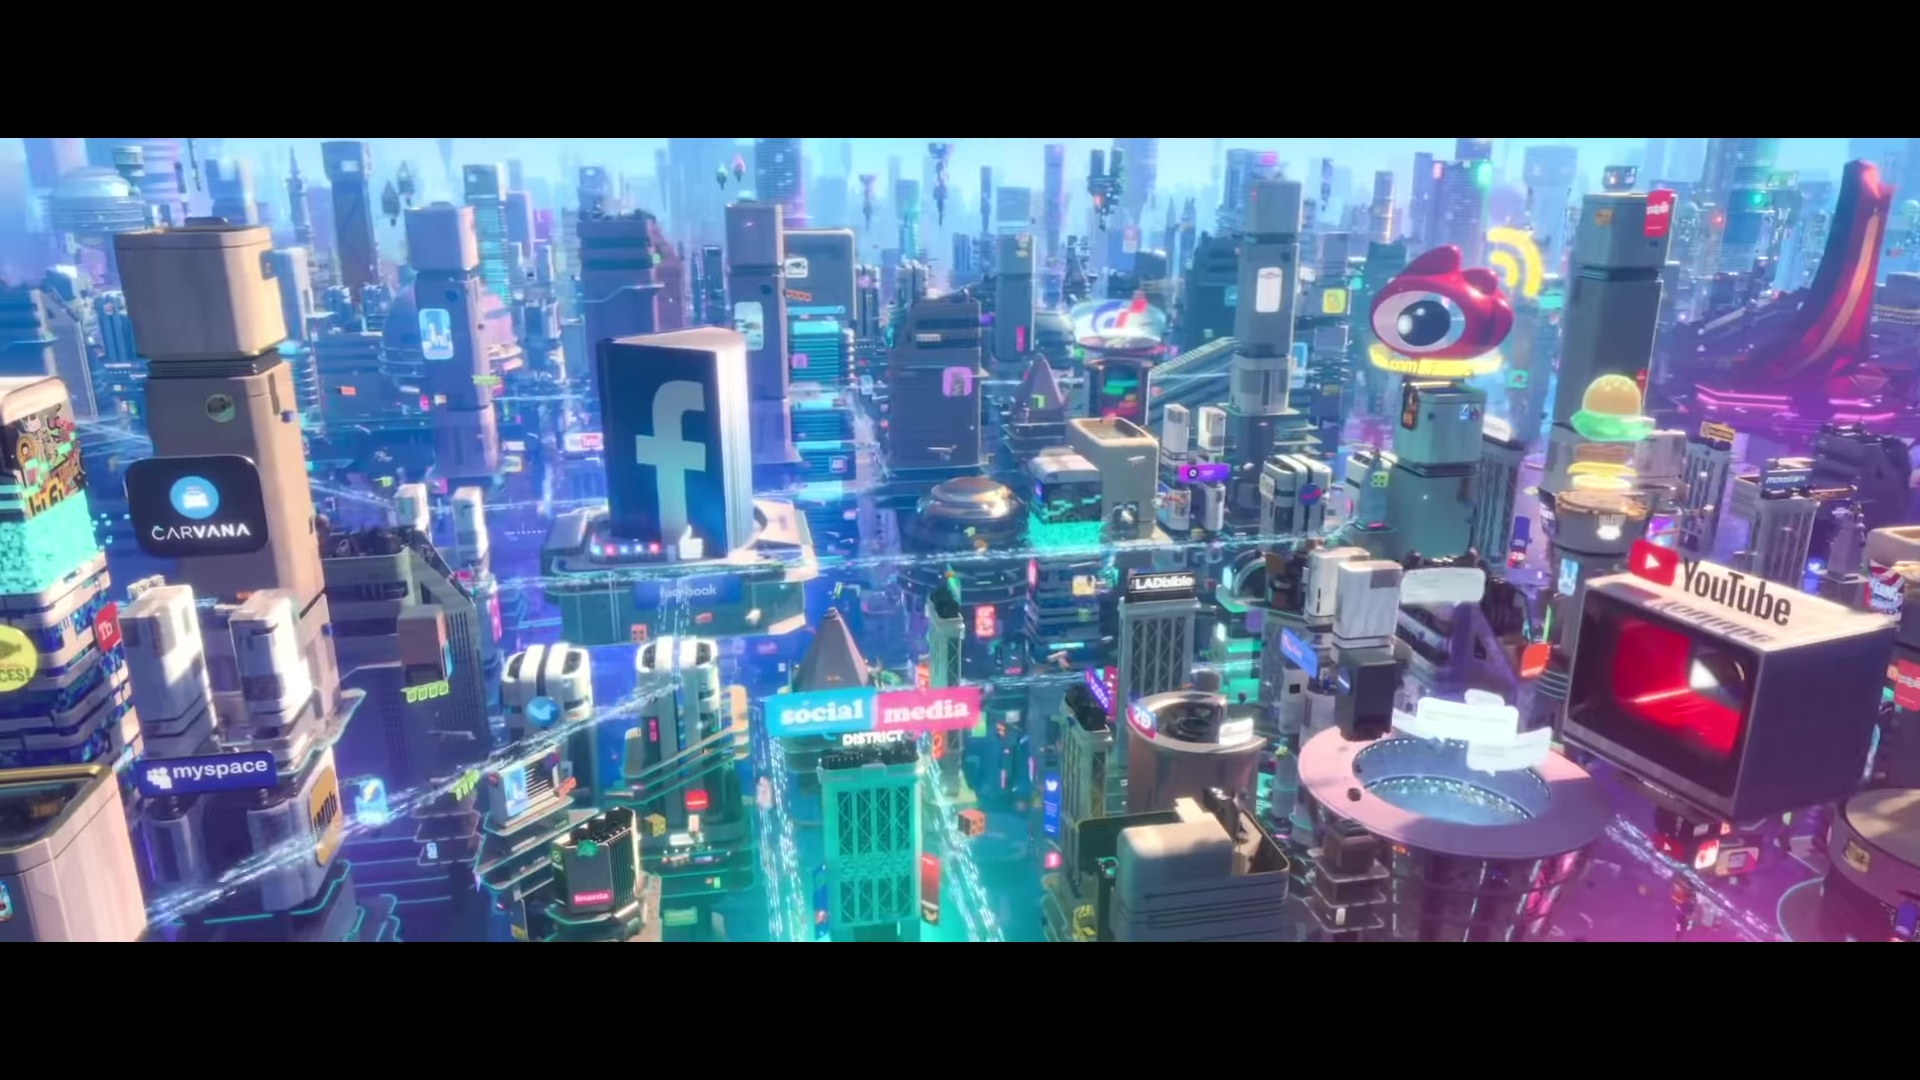 Carvana Myspace Facebook And Youtube In Ralph Breaks The